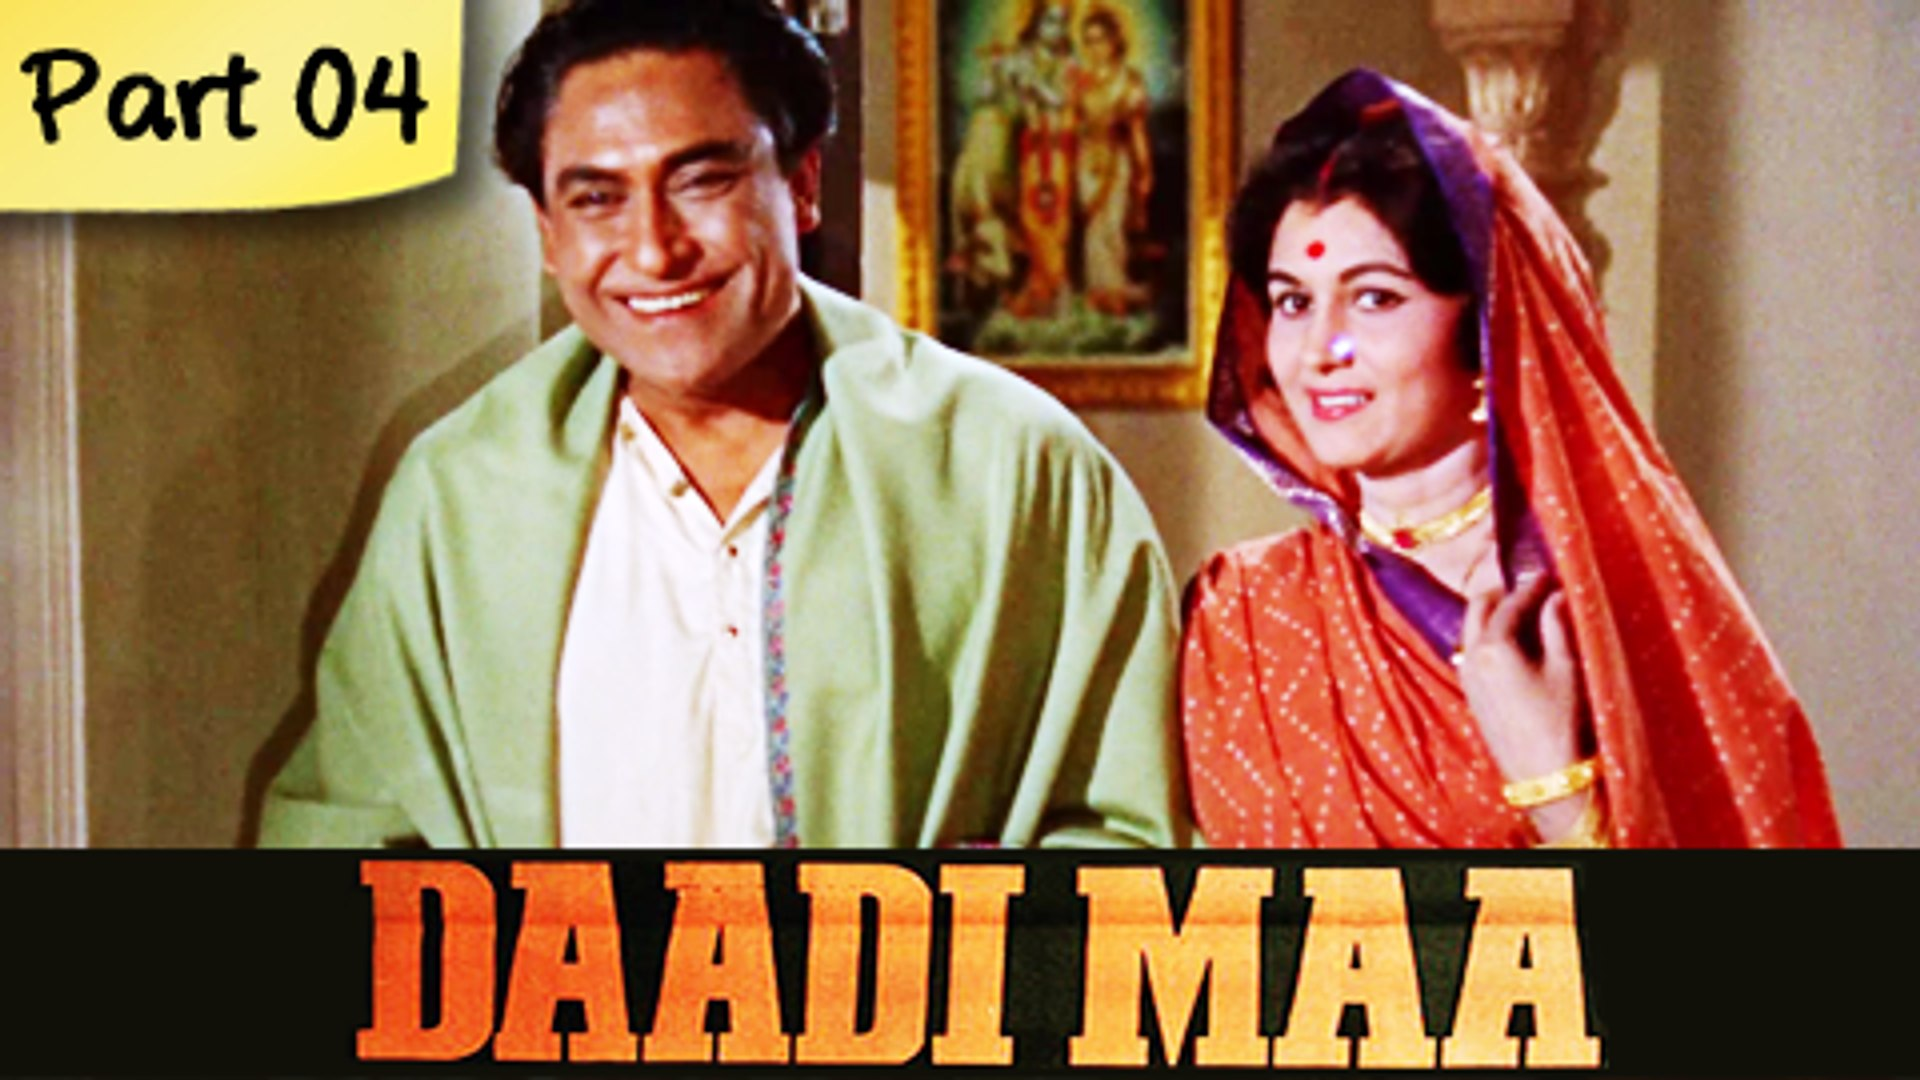 Daadi Maa - Part 04/14 - Super Hit Classic Bollywood Family Movie - Ashok Kumar, Mumtaz, Mehmood